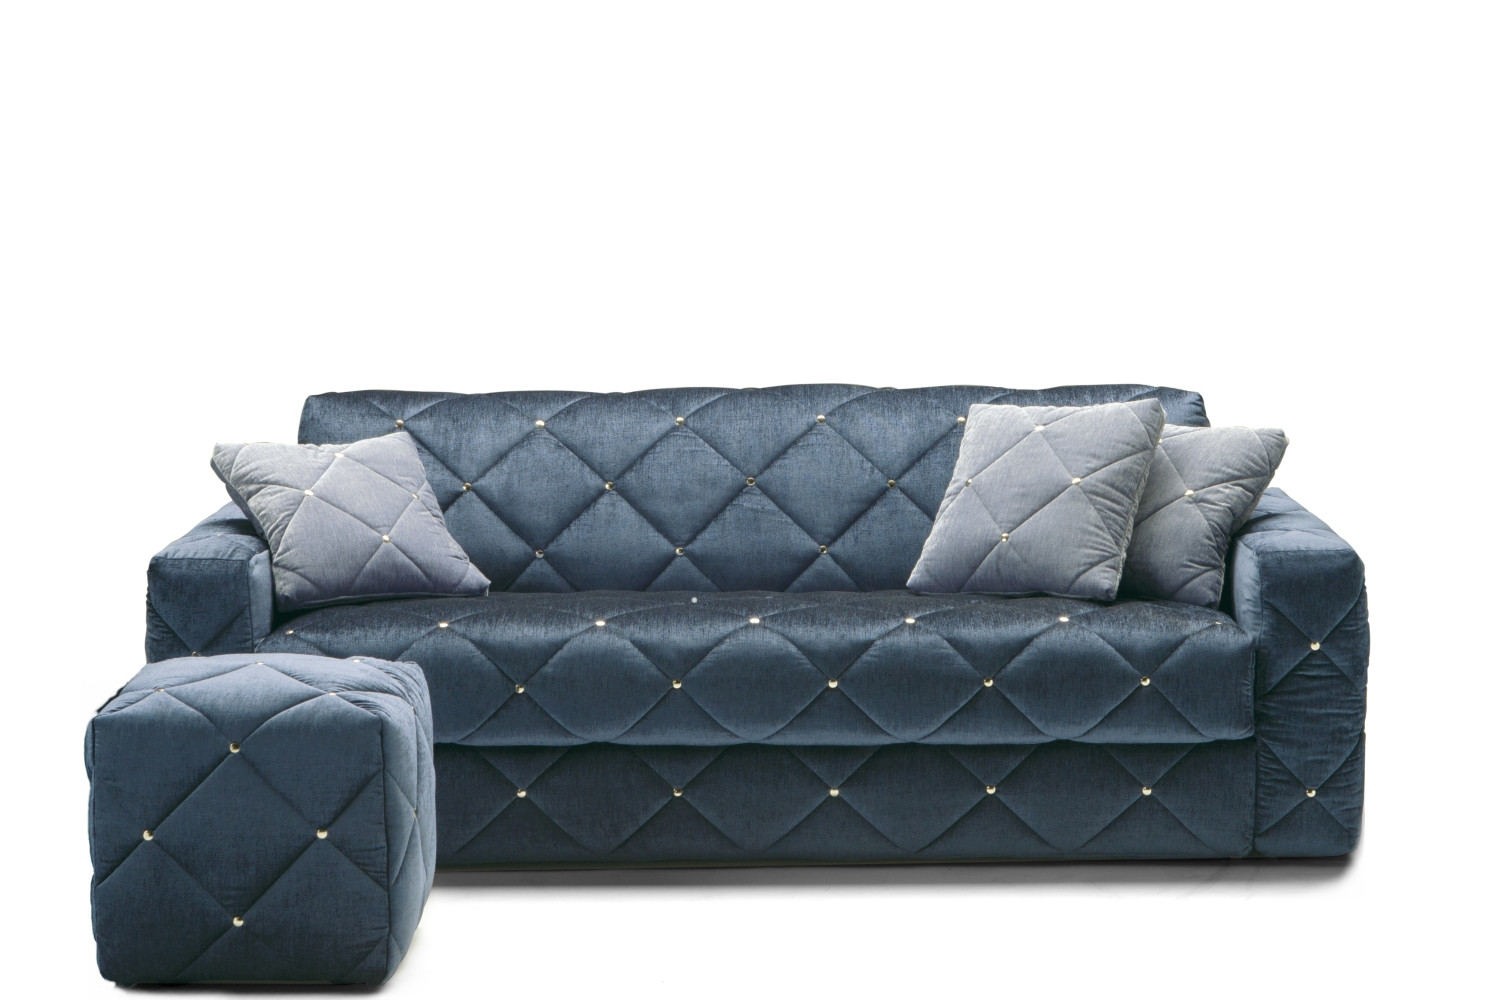 Douglas Quilted Sofa With Diamond Tufted Decoration.